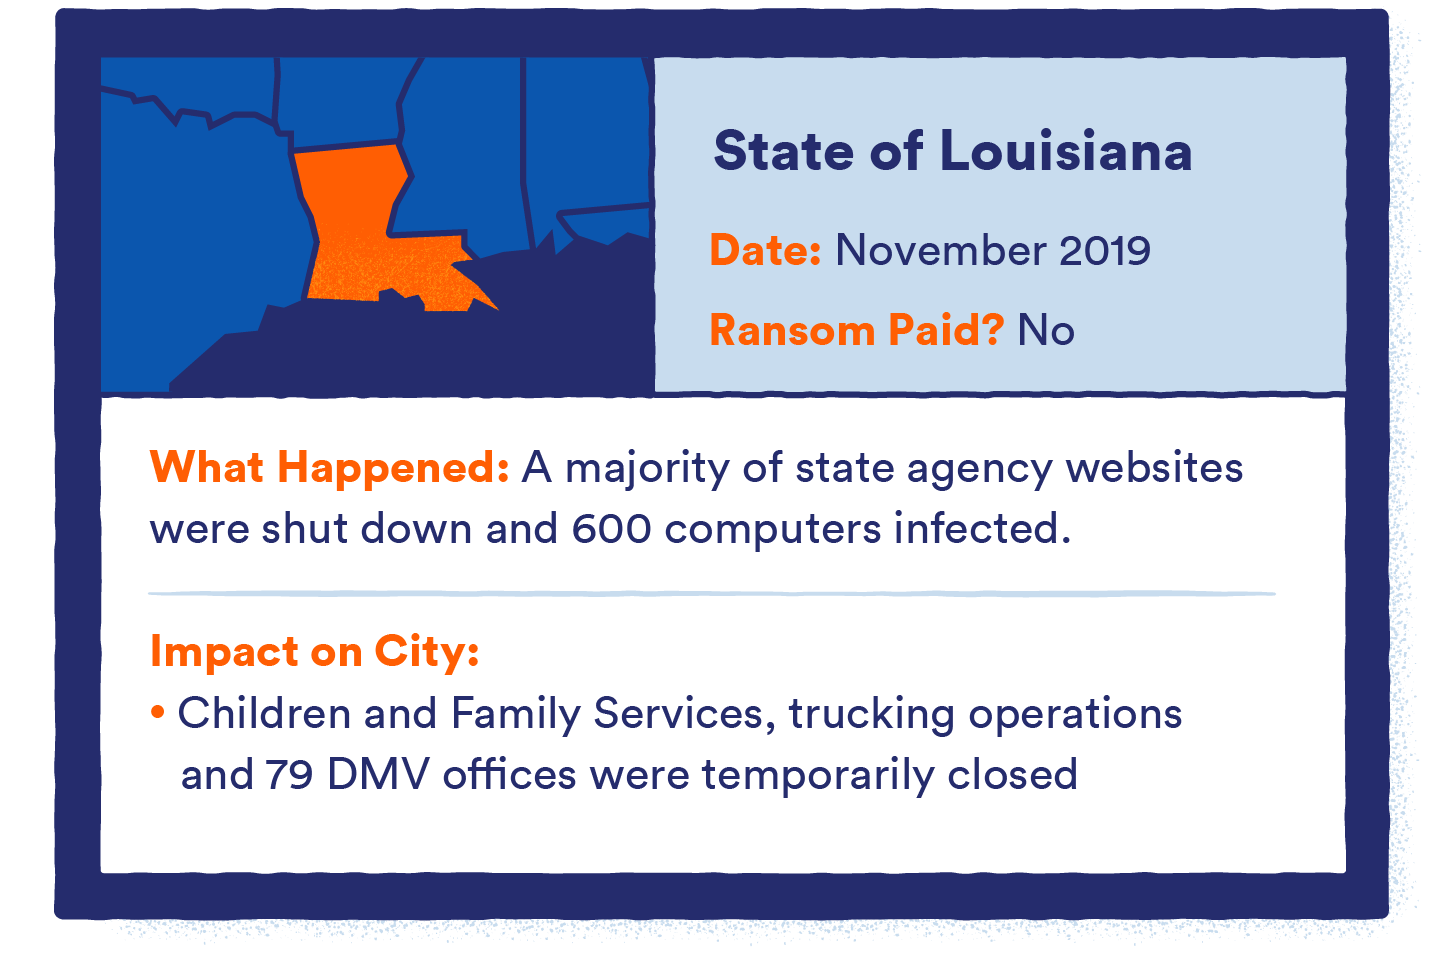 graphic that shows ransomware in Louisiana